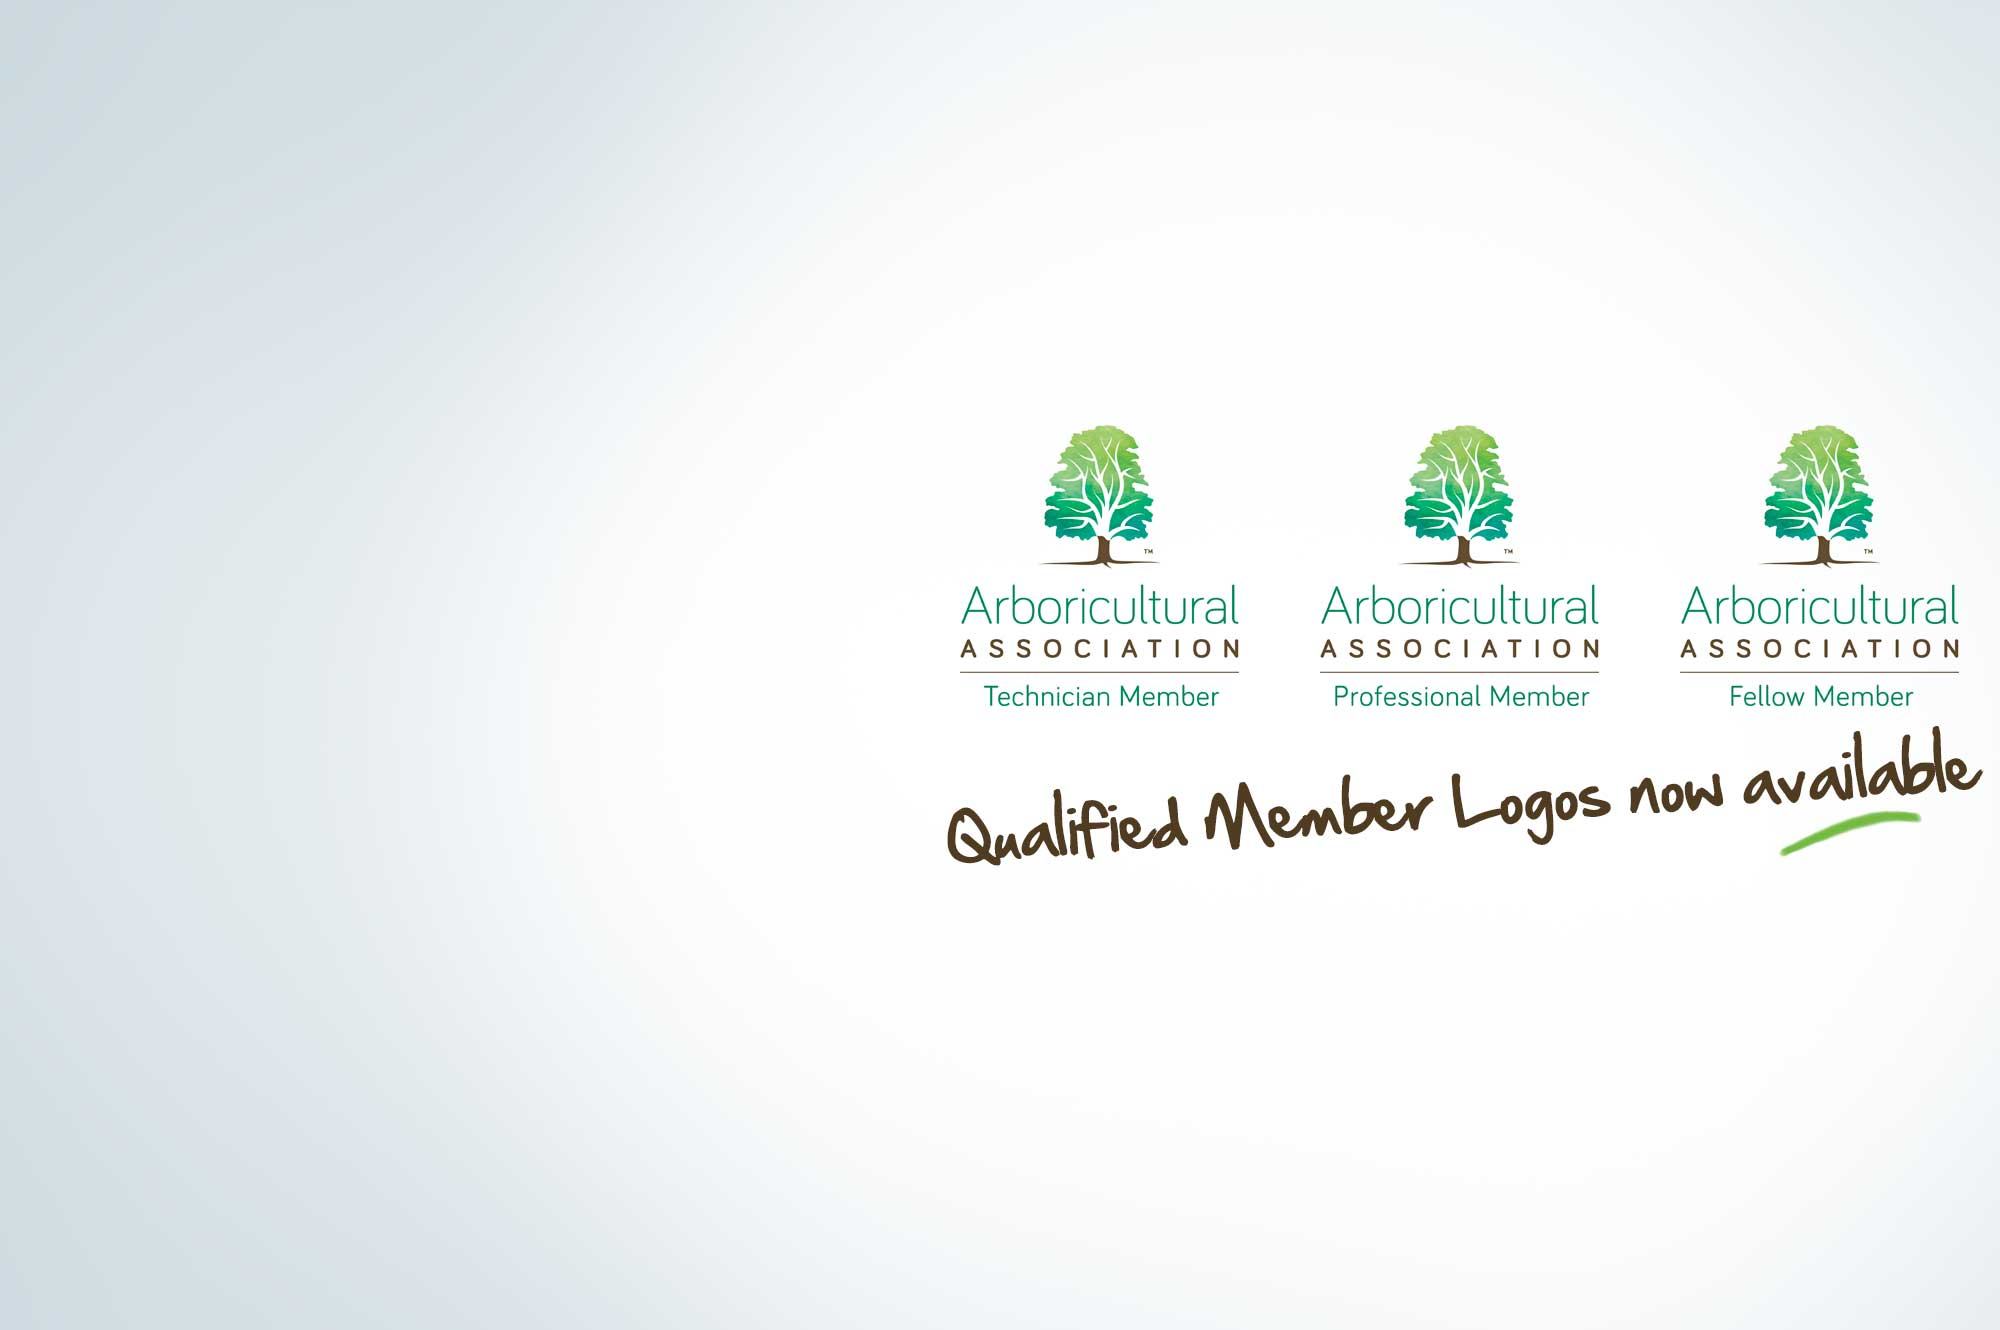 AA Qualified Member Logos released